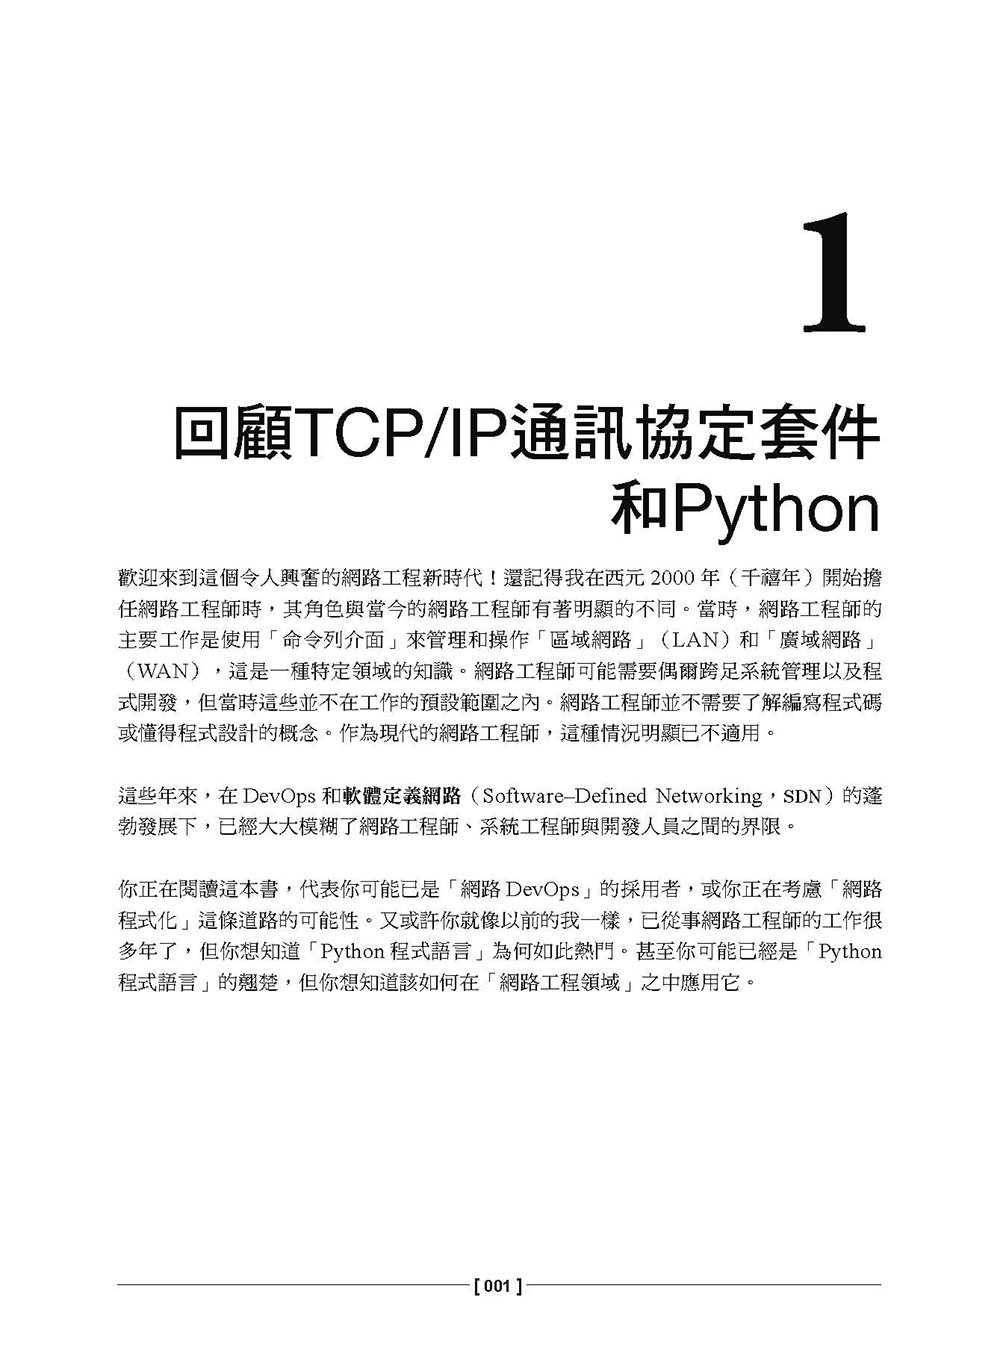 Python × Network 一拍即合:自動化、程式化和 DevOps 的一站式解決方案 (Mastering Python Networking, 3/e)-preview-2